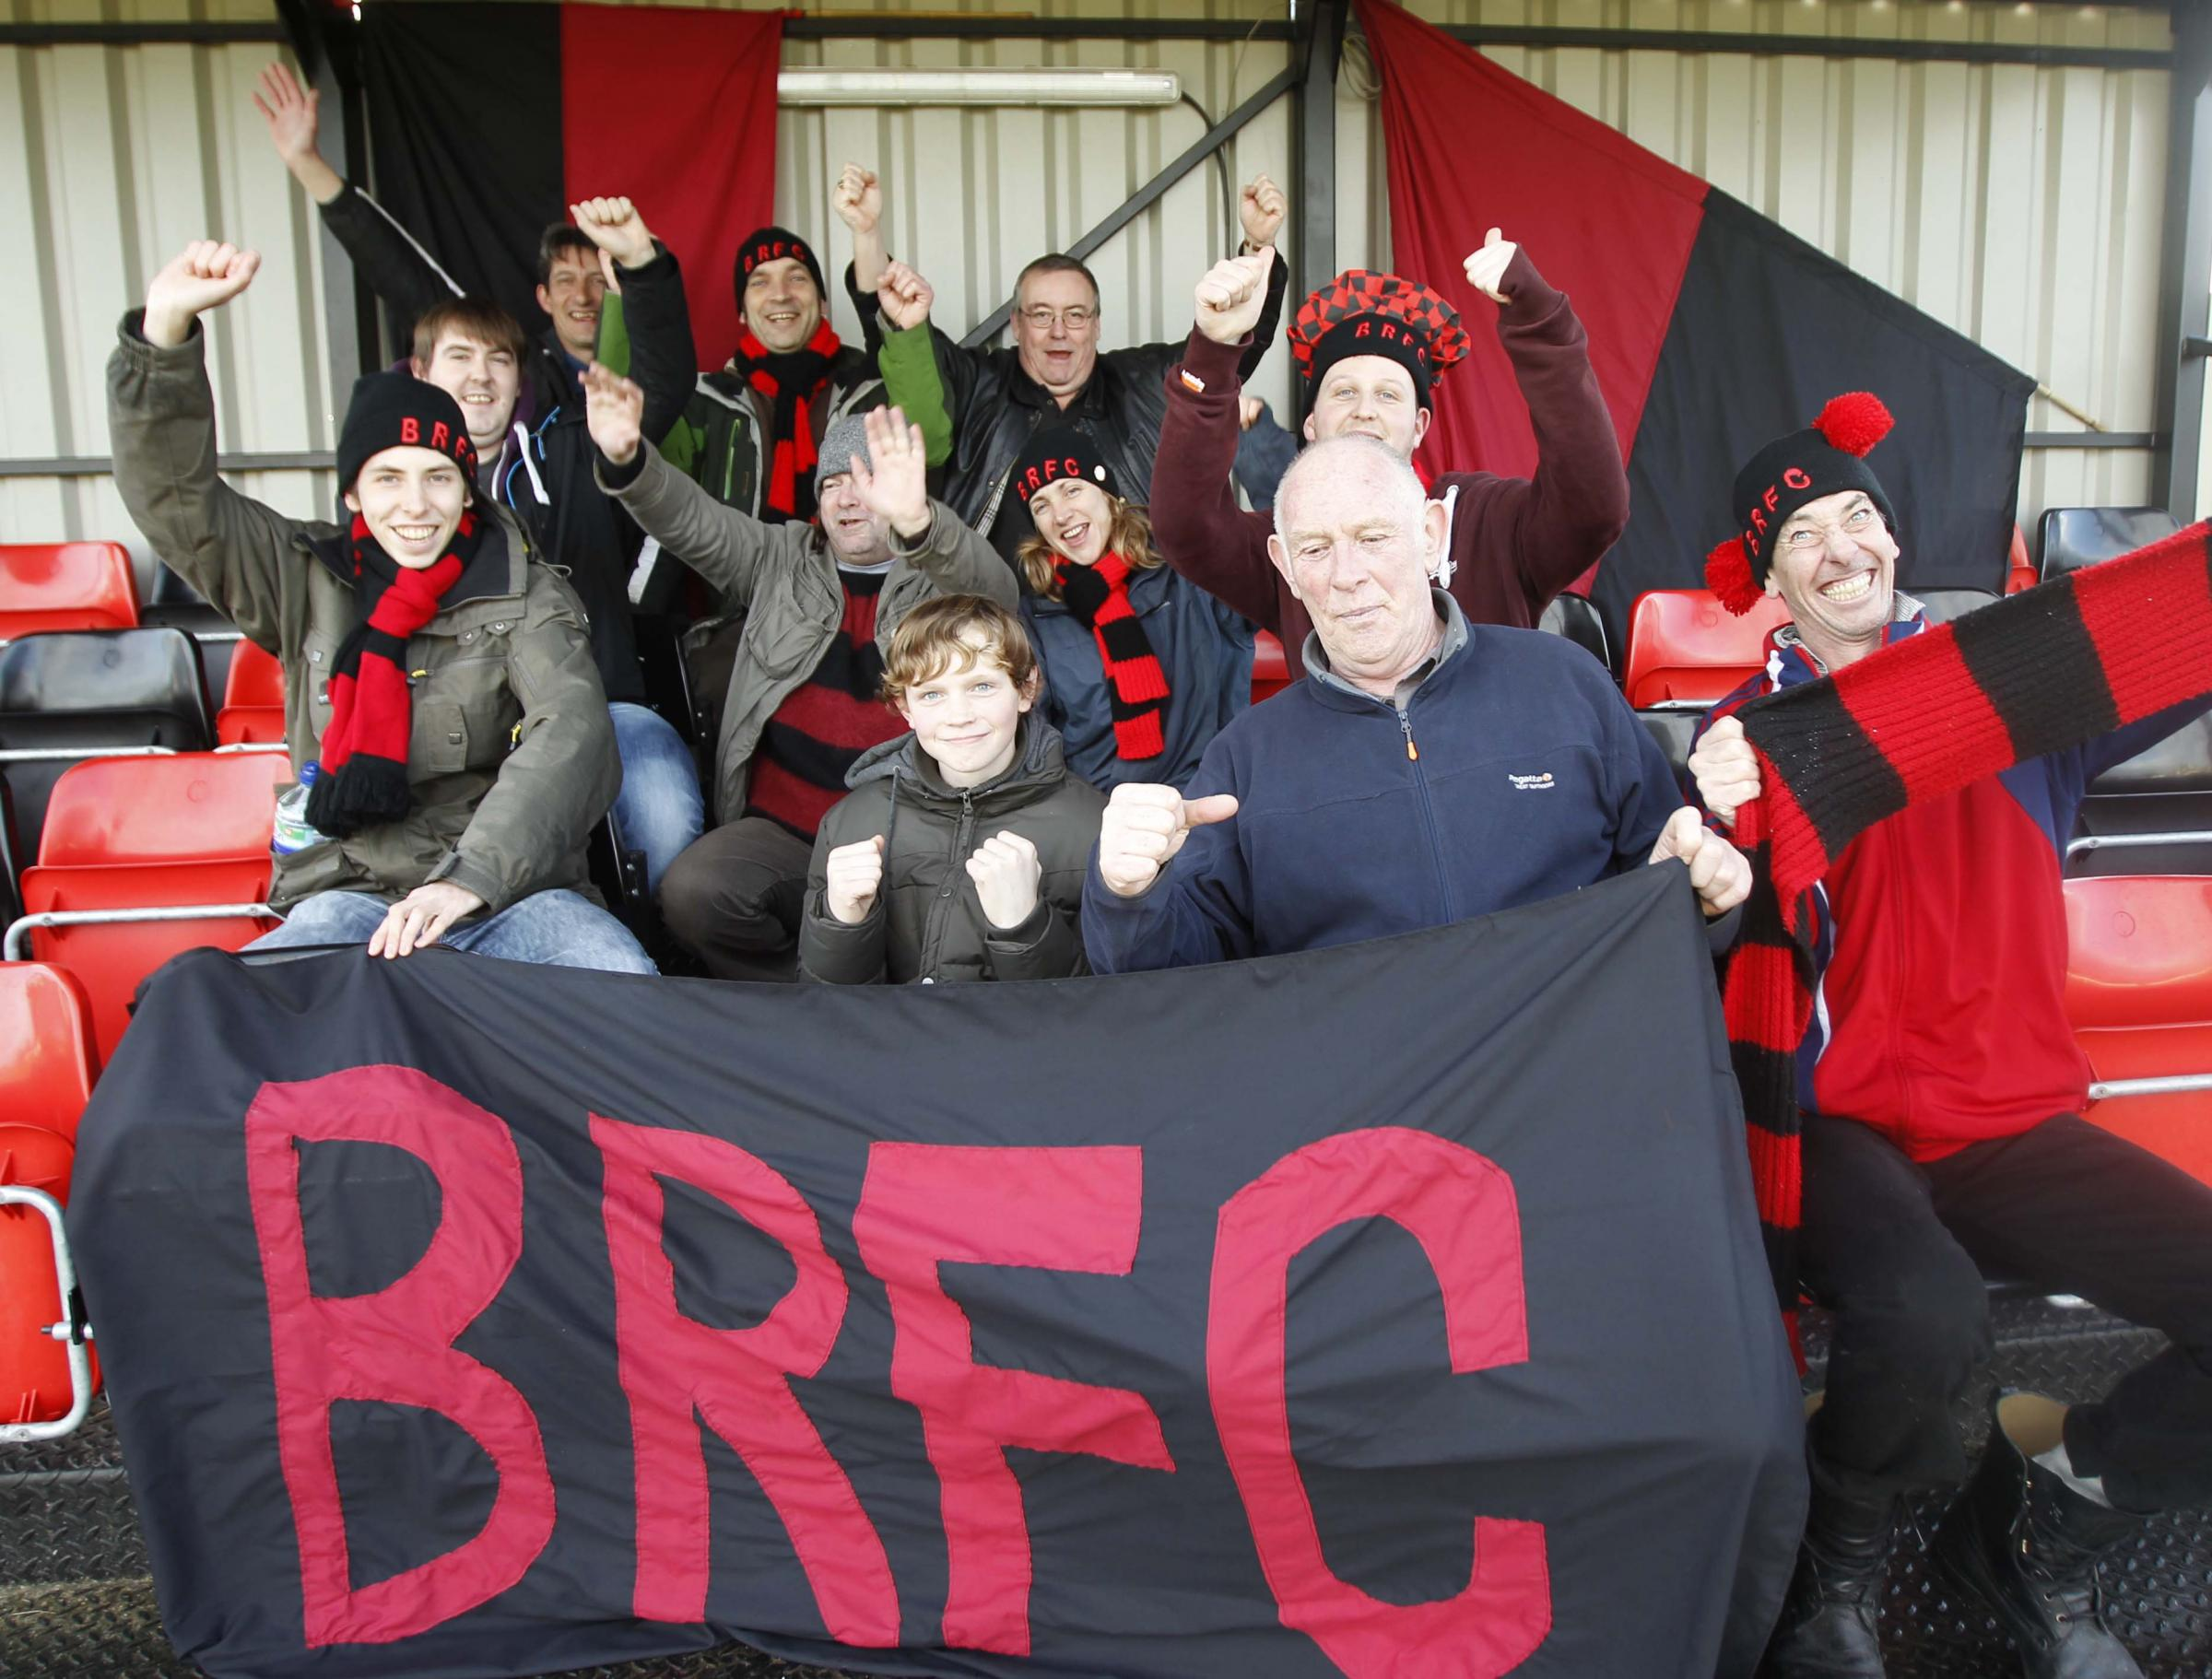 Brightlingsea Regent fans prepare for the biggest match their club has ever faced.